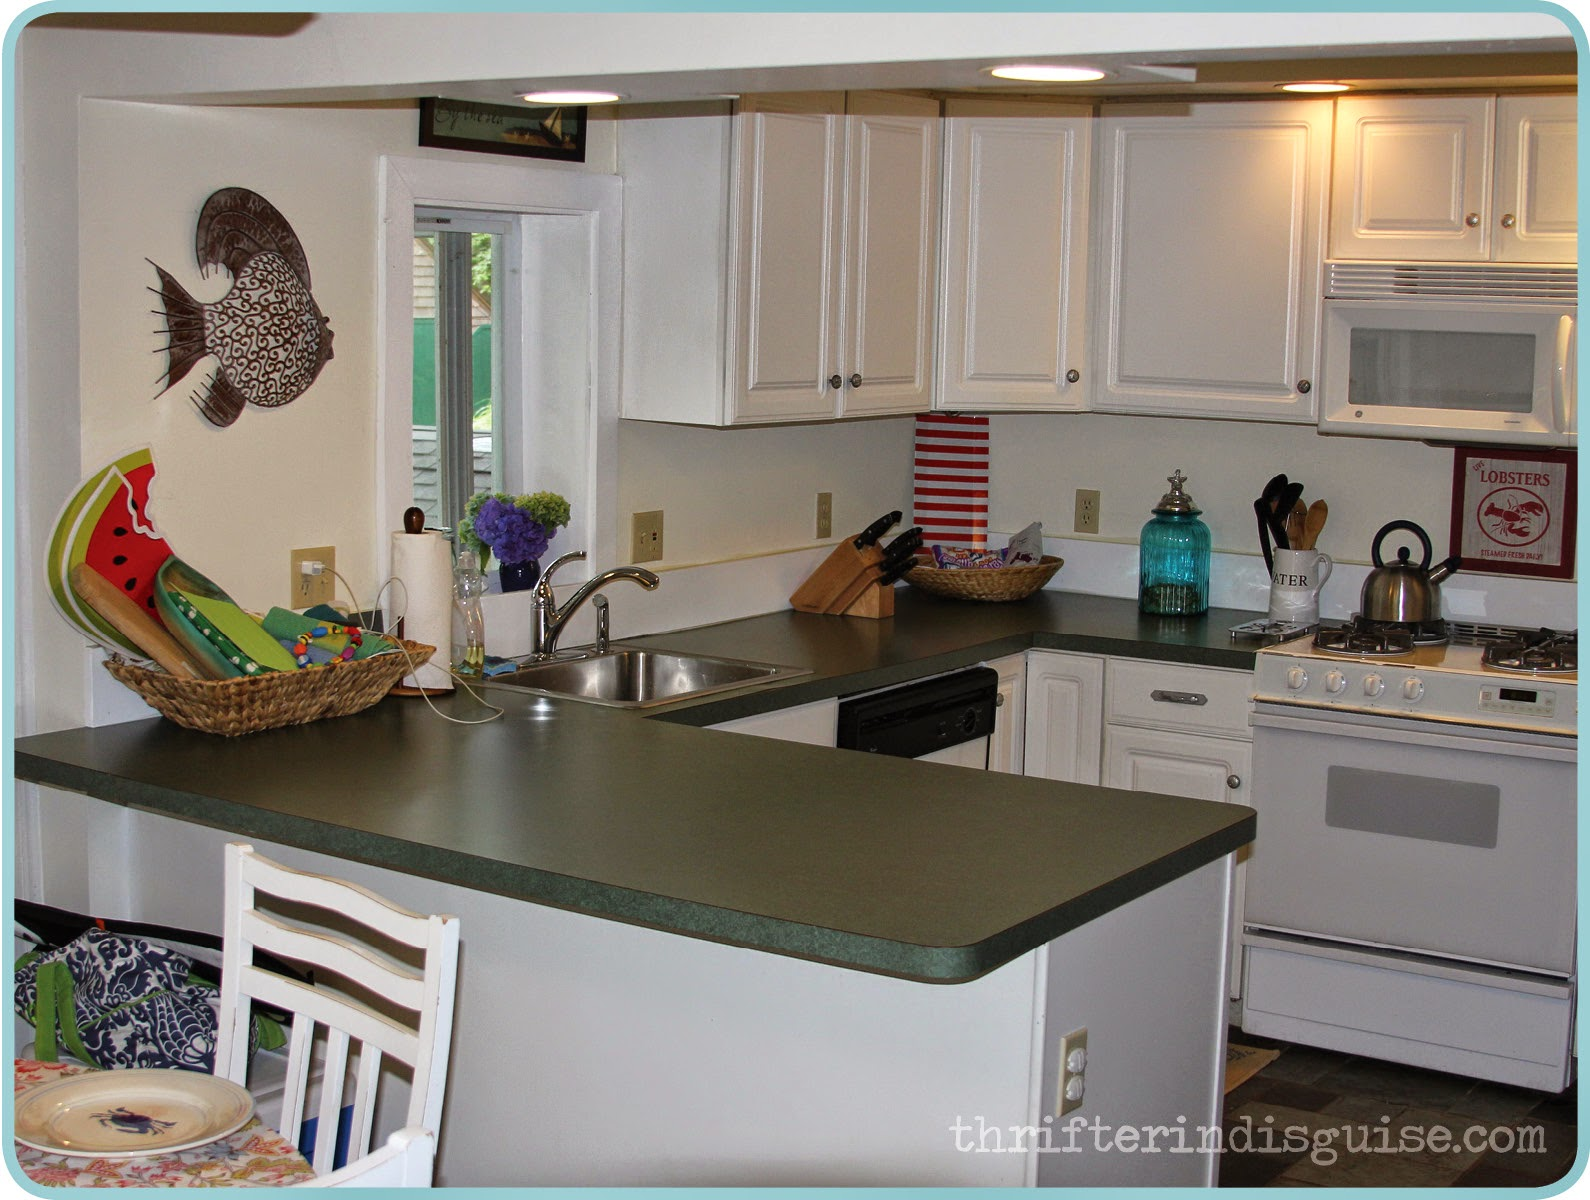 Updating Laminate Countertops